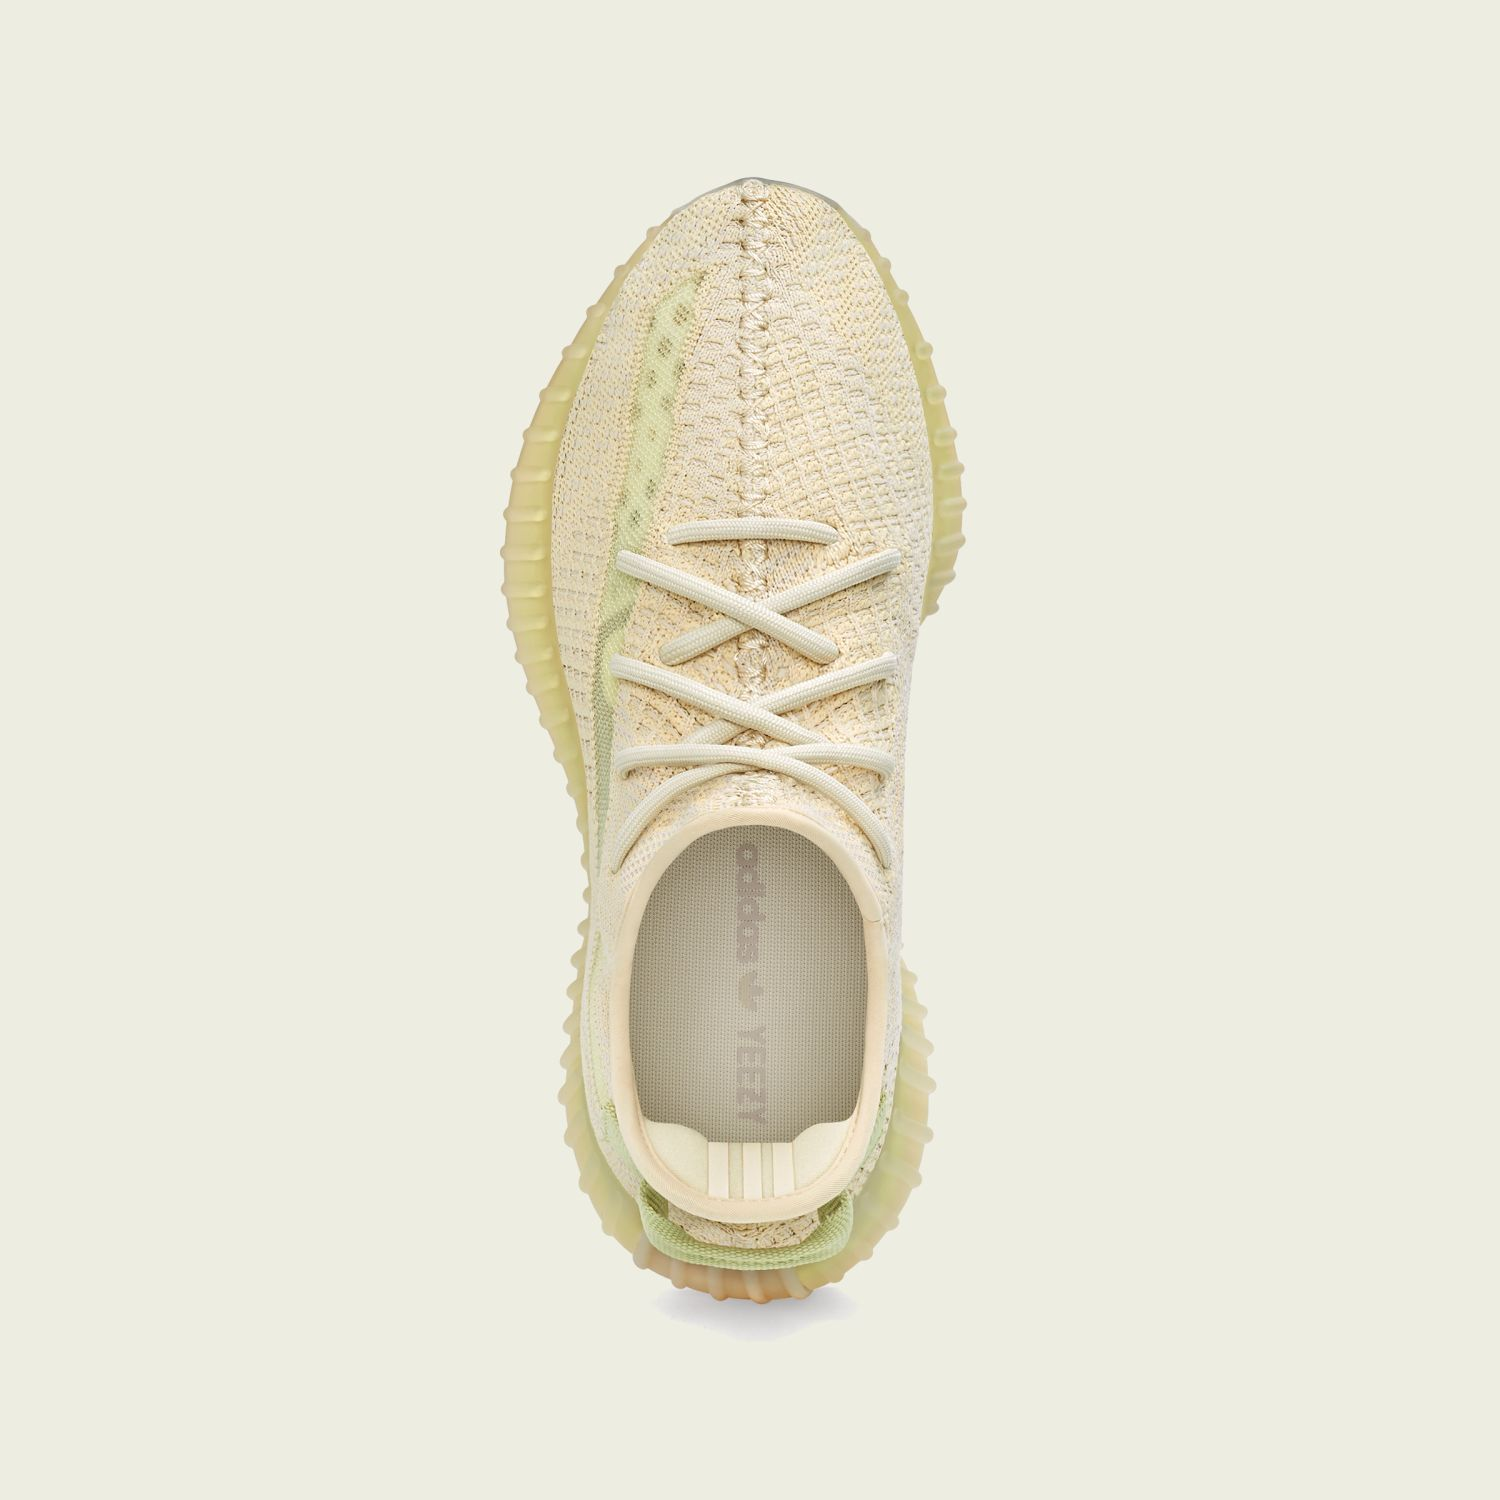 Yeezy Boost 350 V2 FLAX [3]